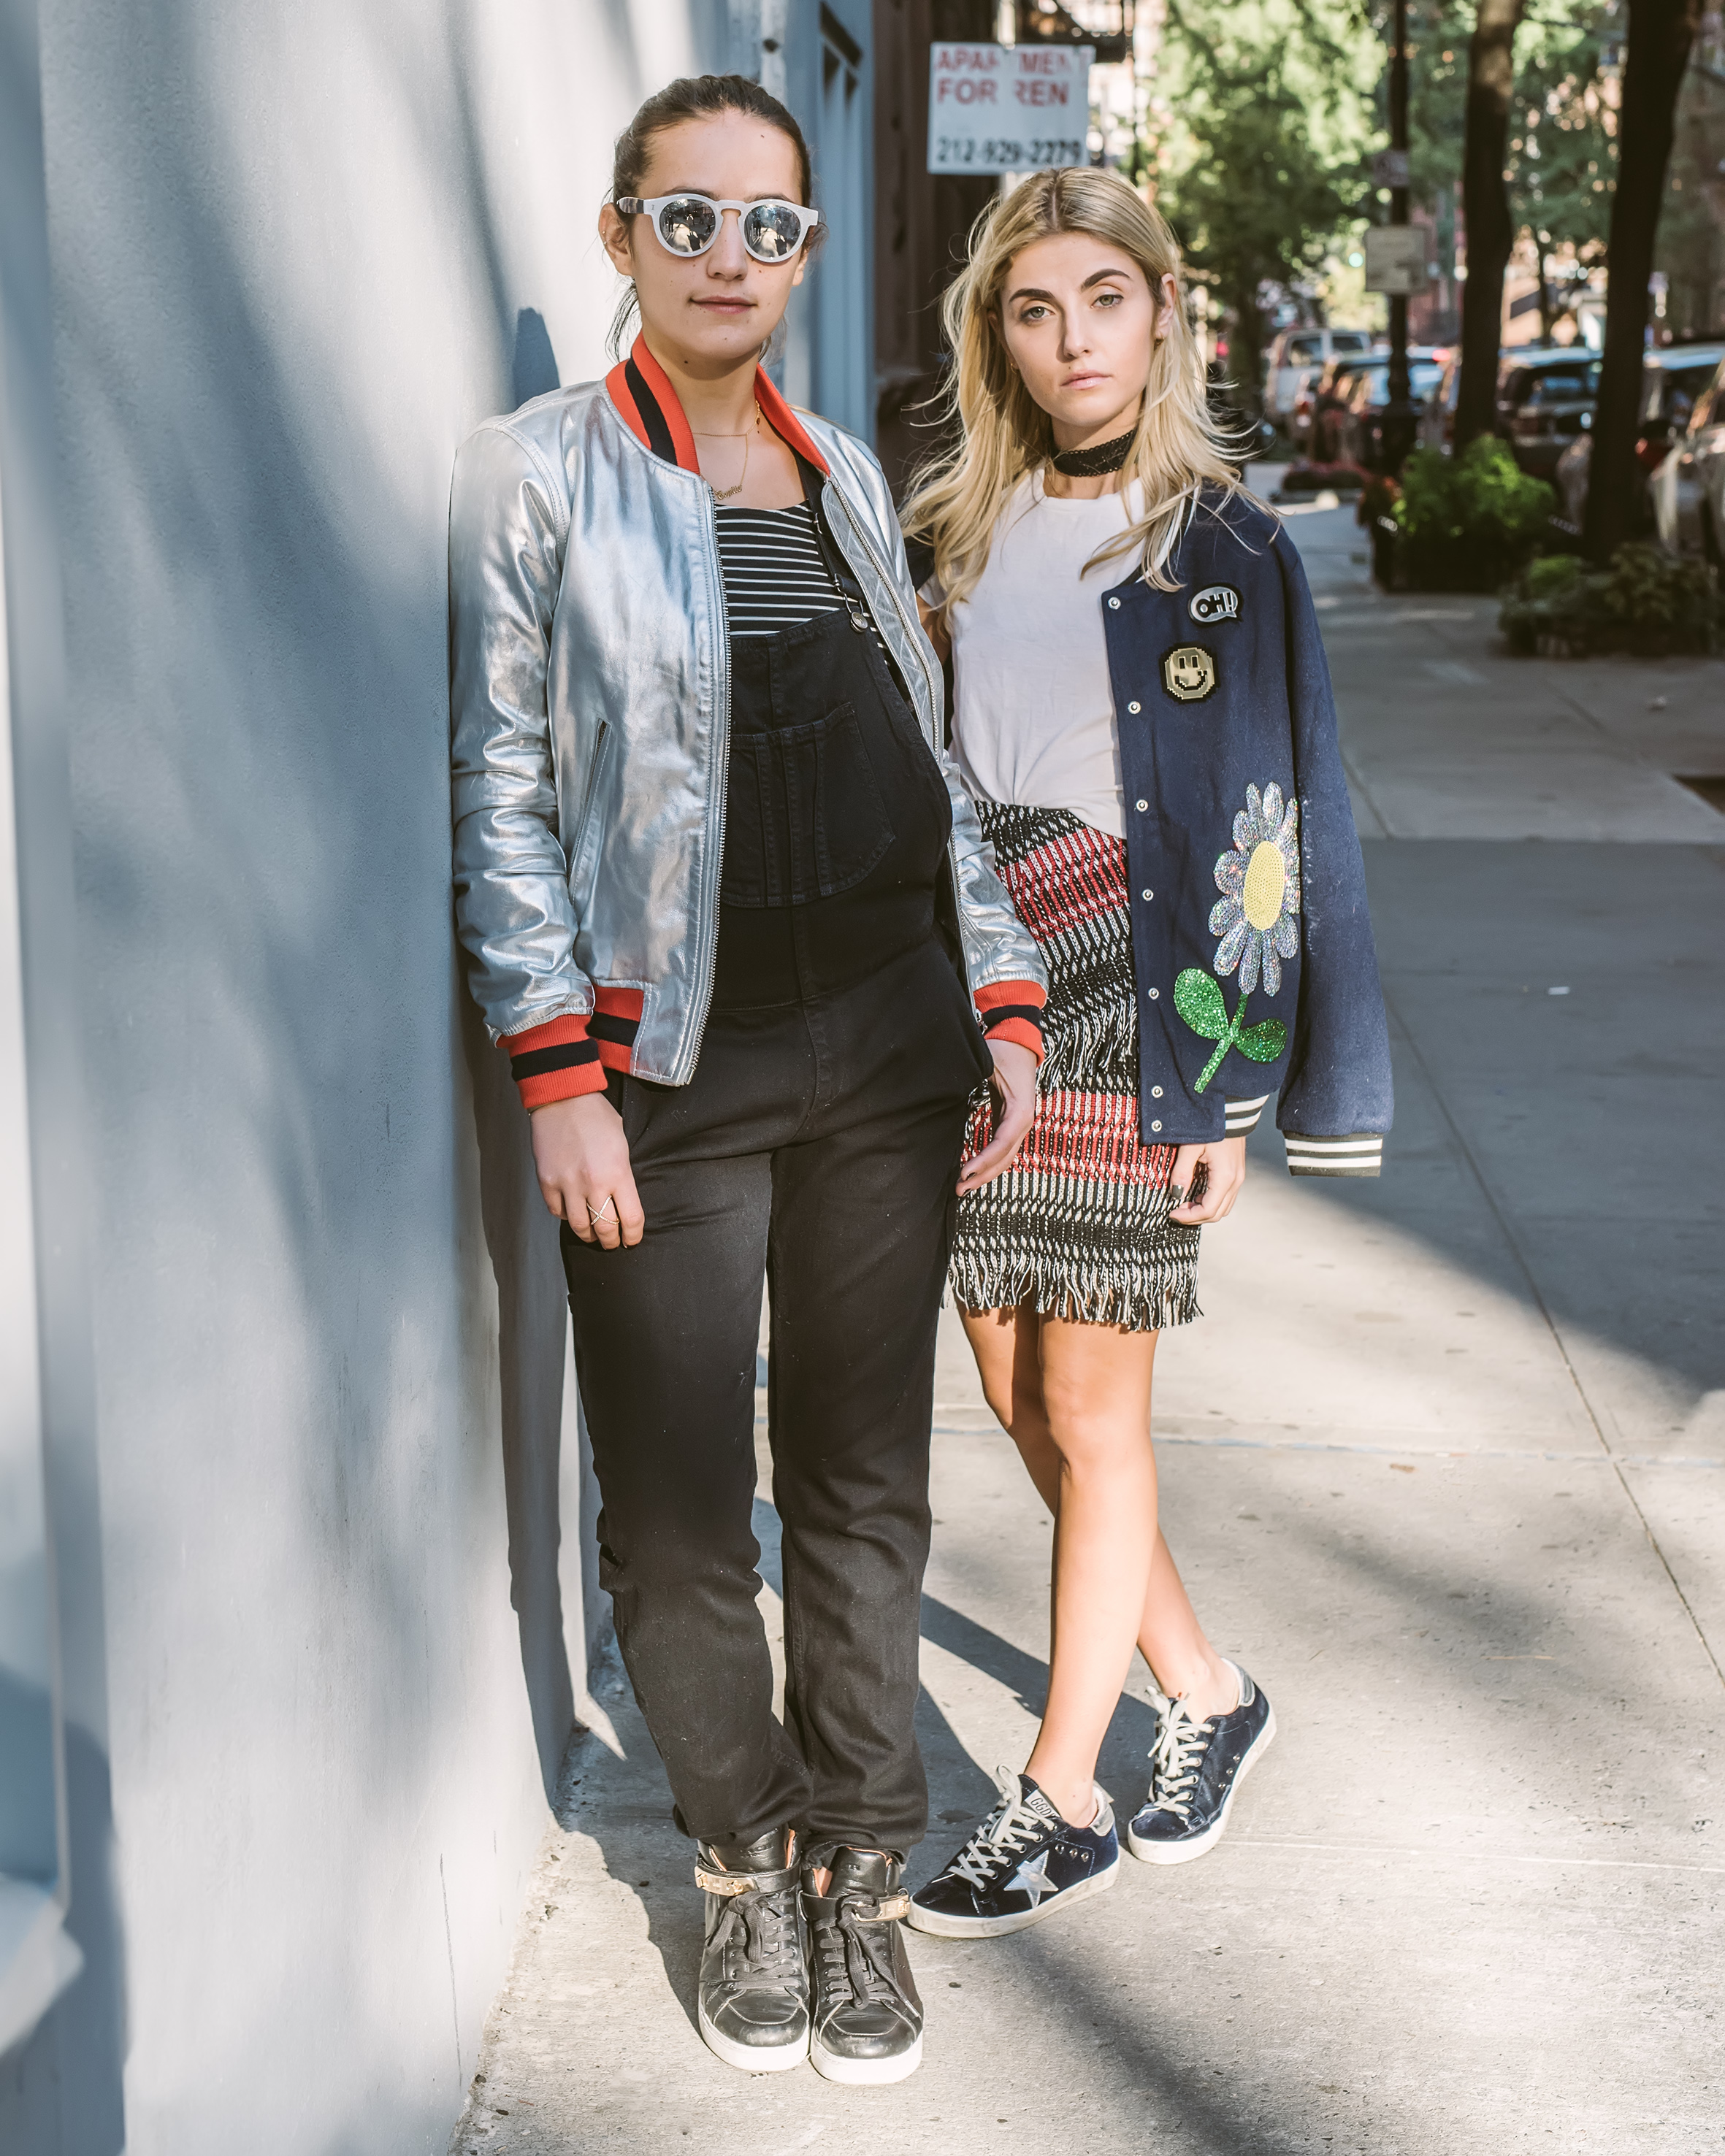 SOPHIE AND CHARLOTTE BICKLEY YIN 2MY YANG FASHION SISTER BLOGGERS BOMBER JACKETS 1.jpg